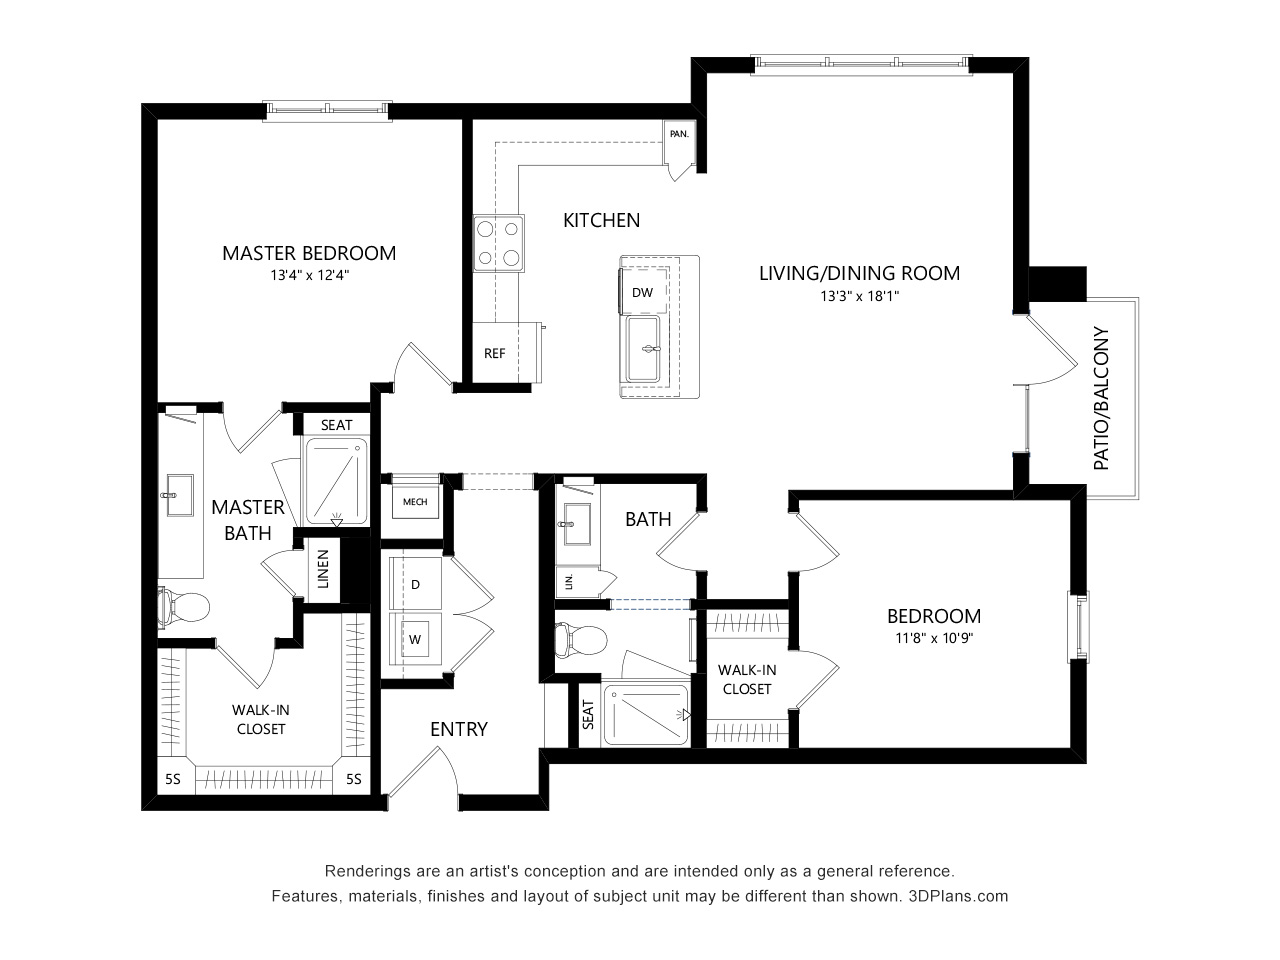 7_Black-and-White-floor-plans « 3Dplans.com